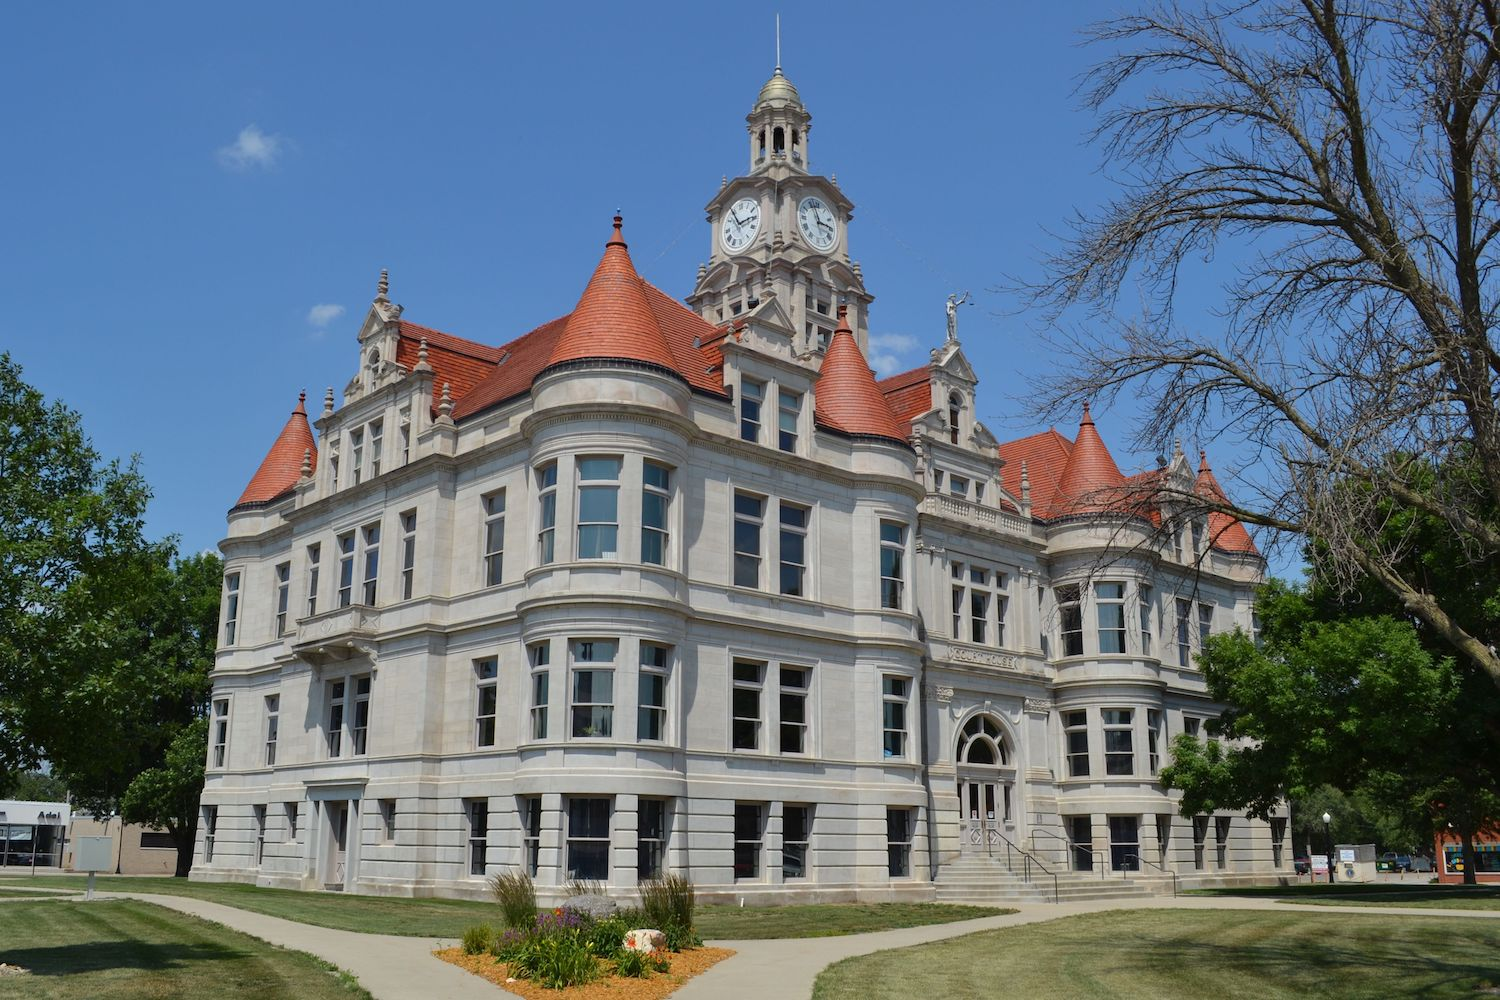 The Dallas County Courthouse in Adel, Iowa.